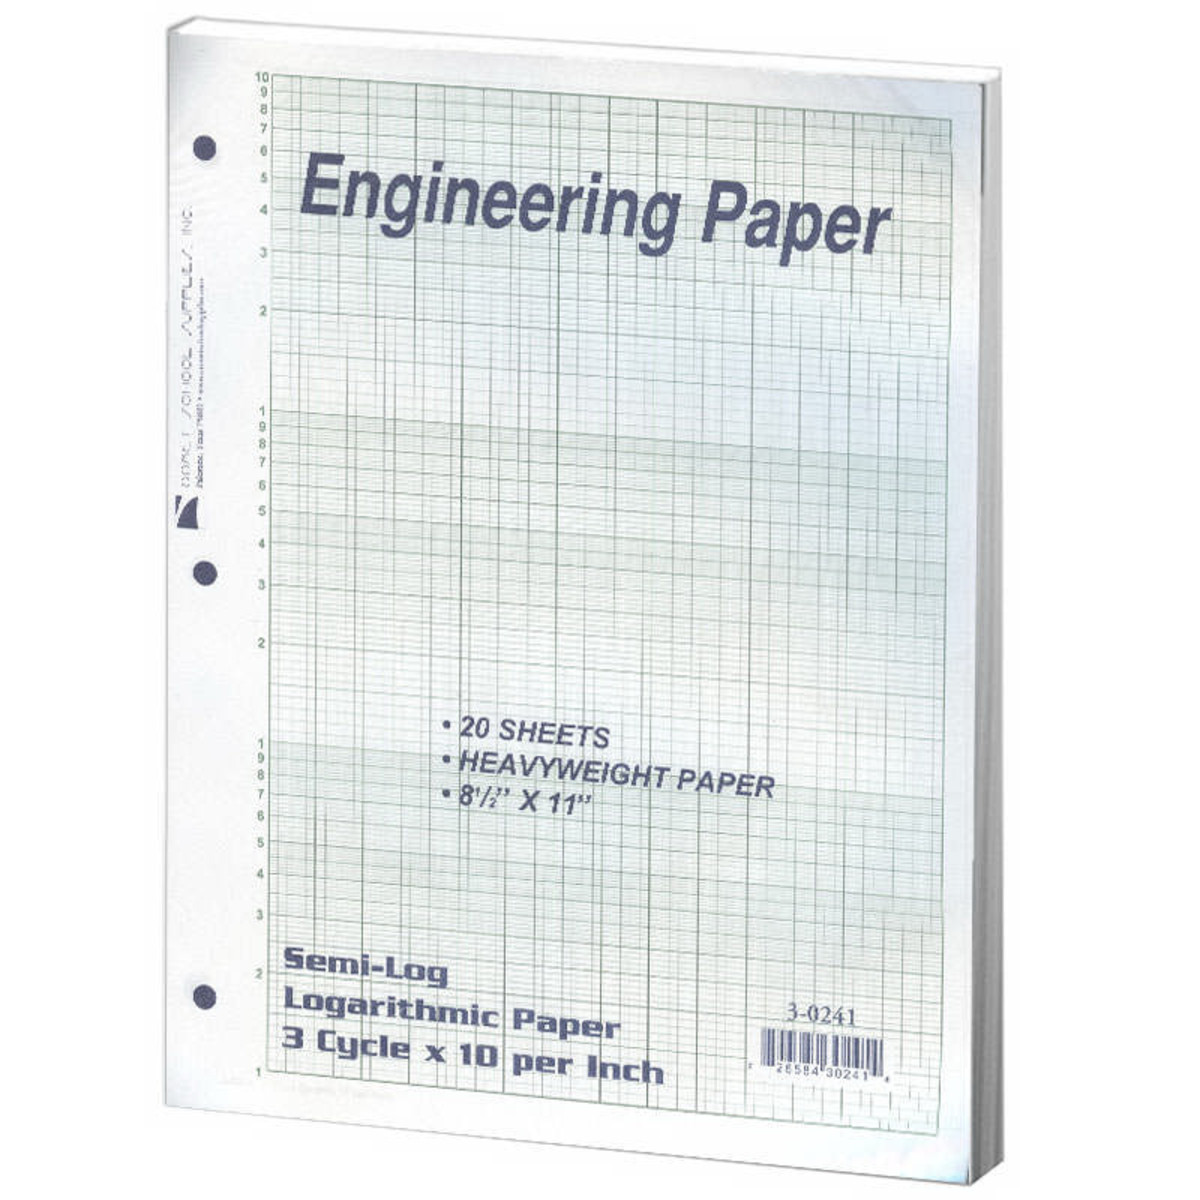 White 3 Cycle X 10 Semi-Log Graph Filler Paper Filler Paper